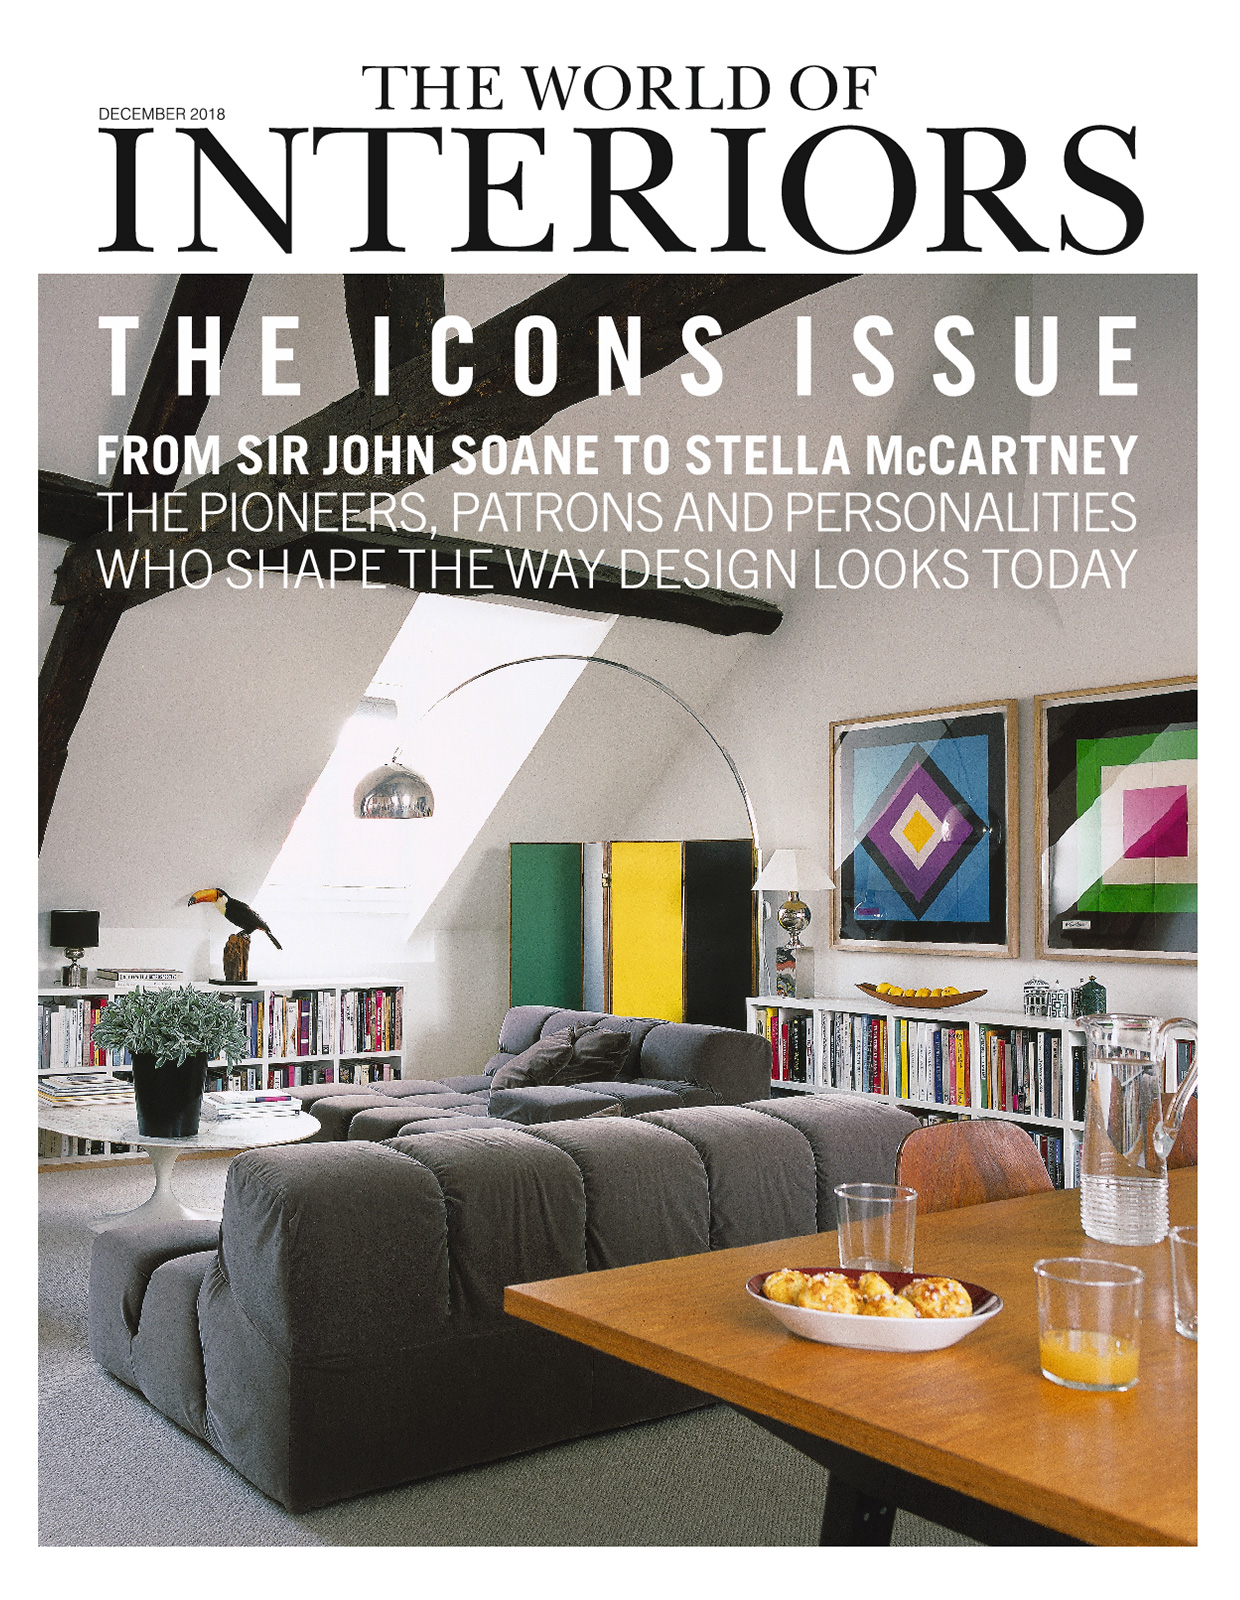 World of Interiors - Décembre 2018